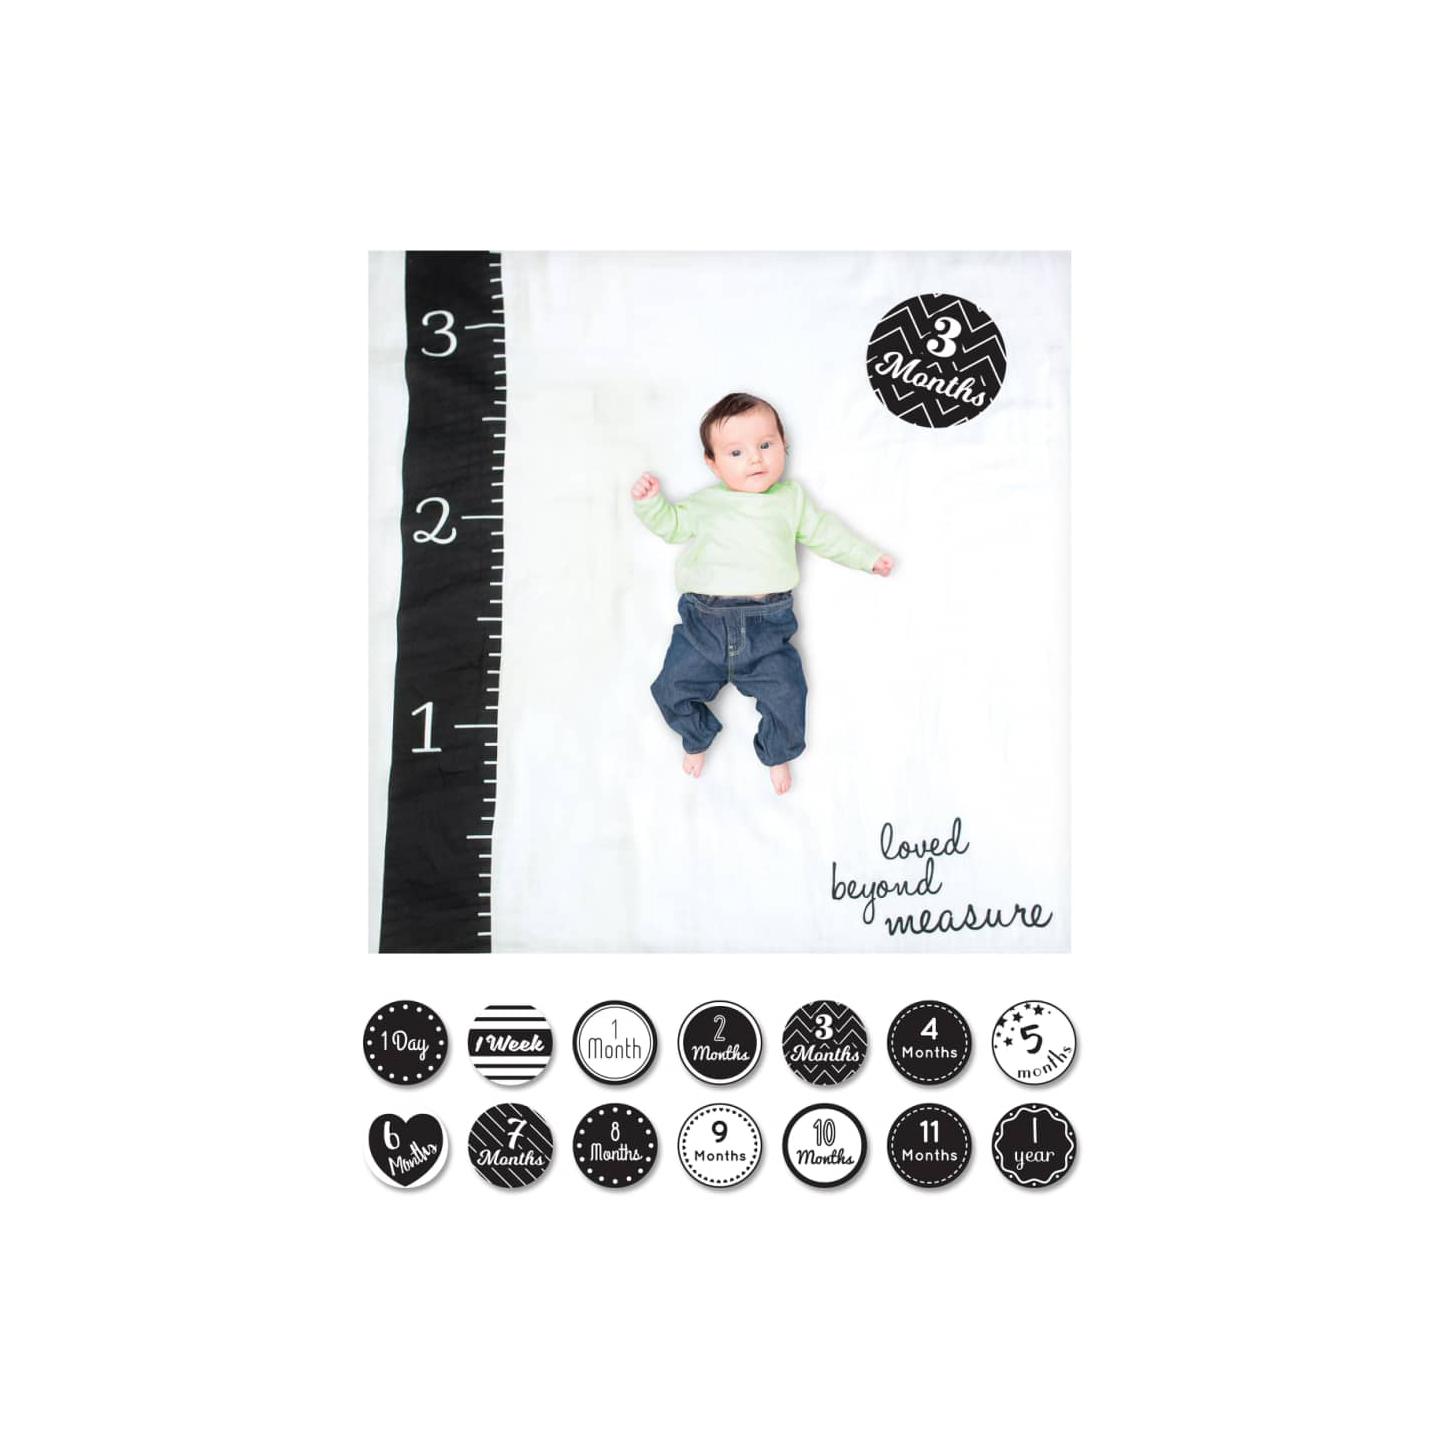 Lulujo Baby's First Year Loved Beyond Measure Muslin Blanket & Milestone Card Set